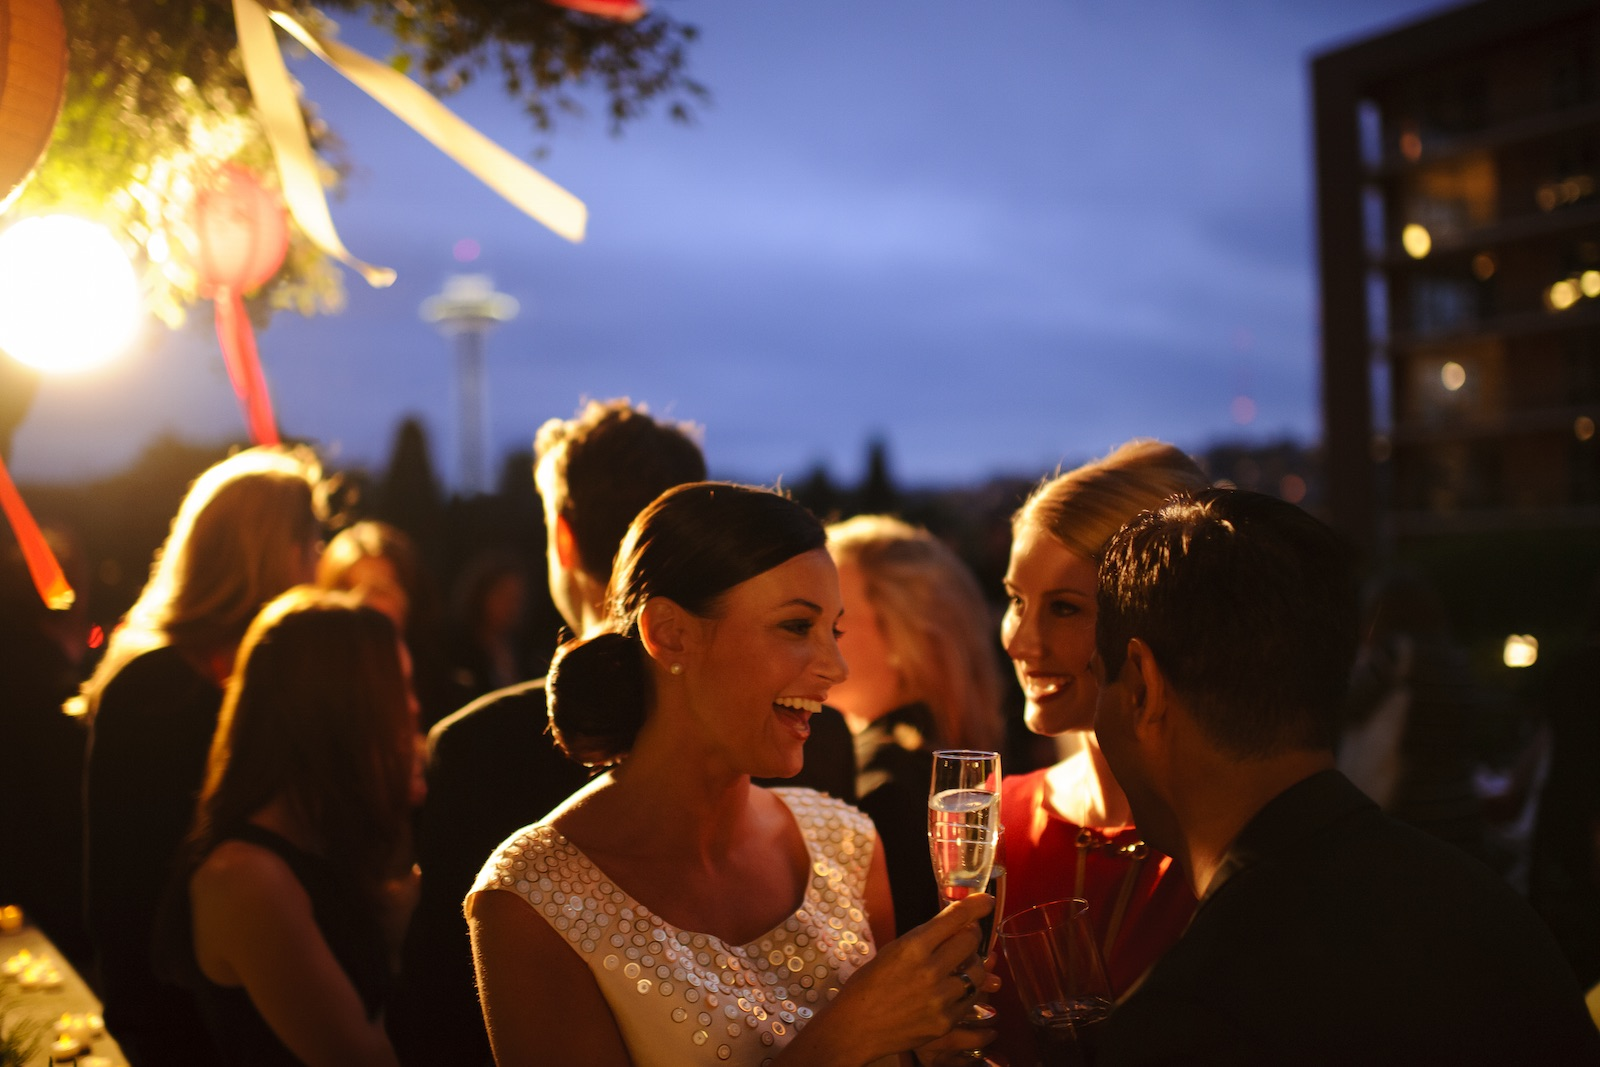 two women hold wine glasses, smiling, as other people mingle in the background at dusk at an outdoor reception, as the Seattle Space Needle is visible in the background